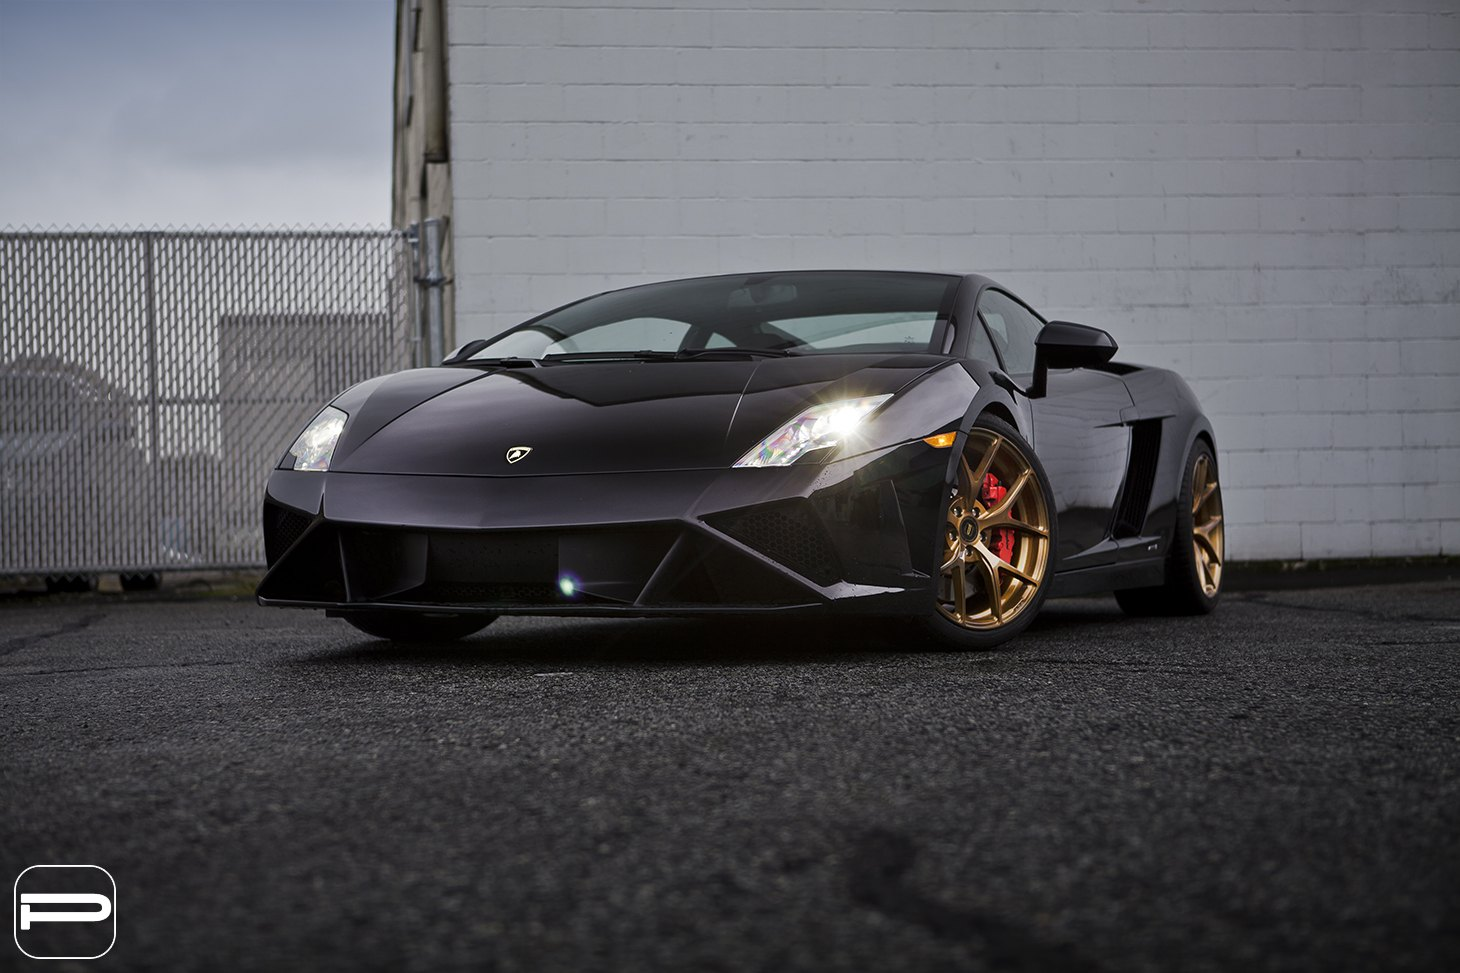 Crystal Clear Headlights On Black Lamborghini Gallardo   Photo By PUR Wheels